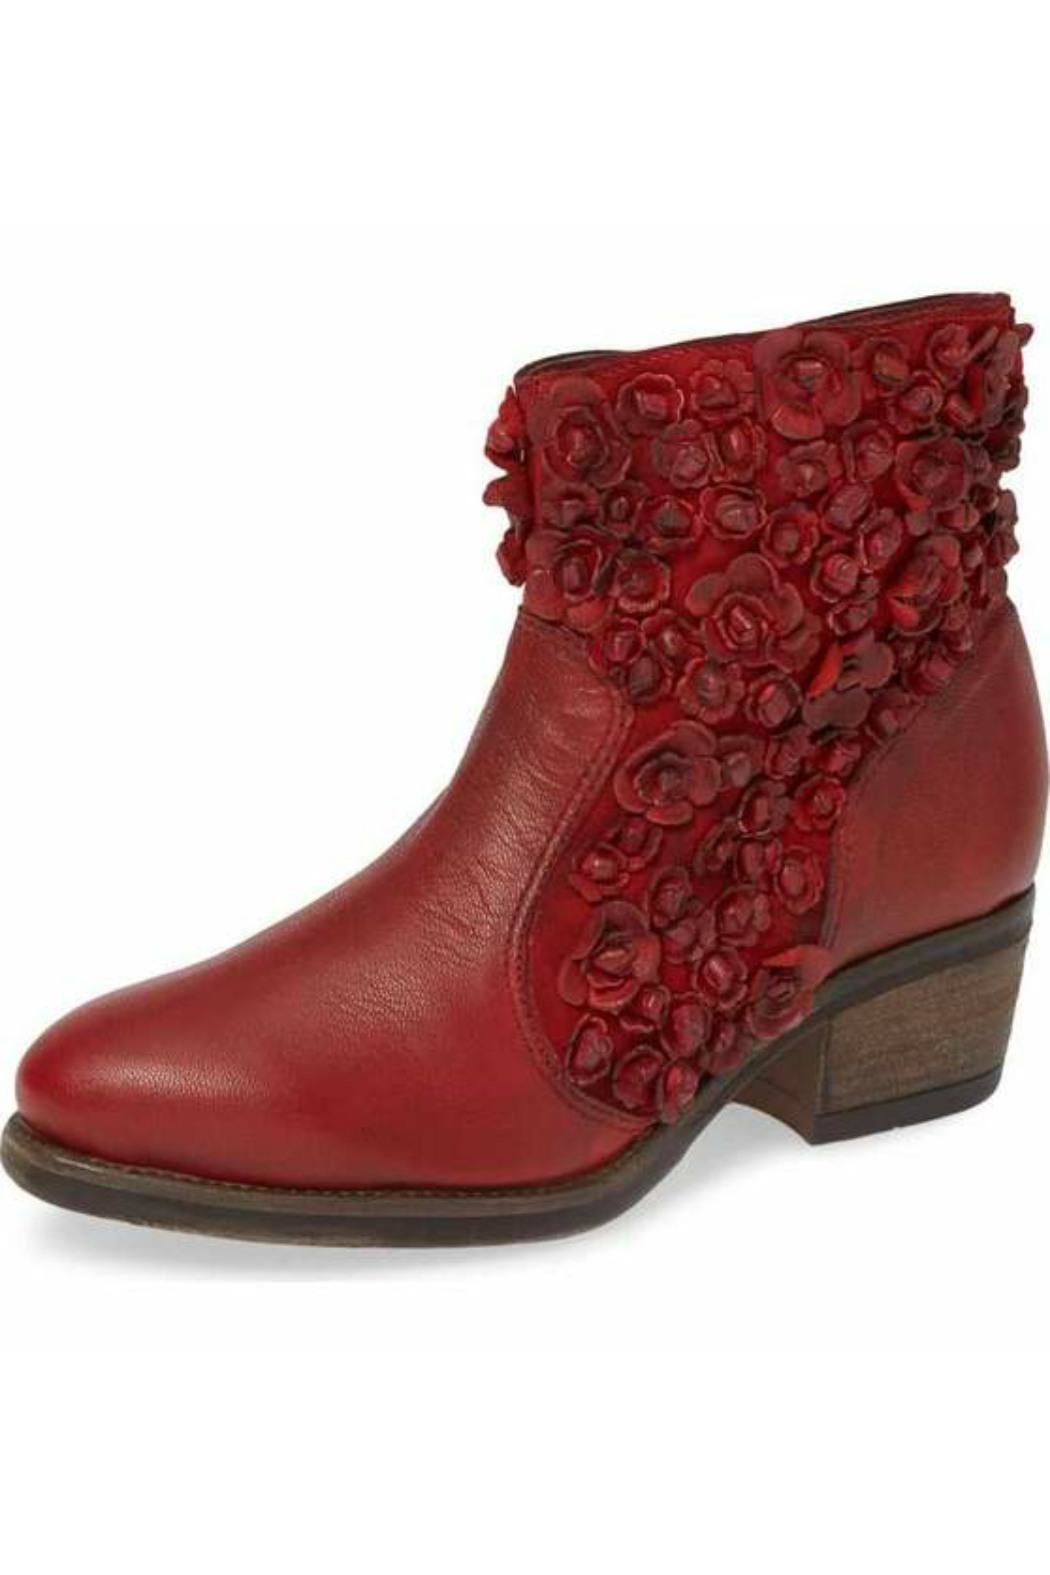 Sheridan Mia Saphire Red Bootie - Front Cropped Image